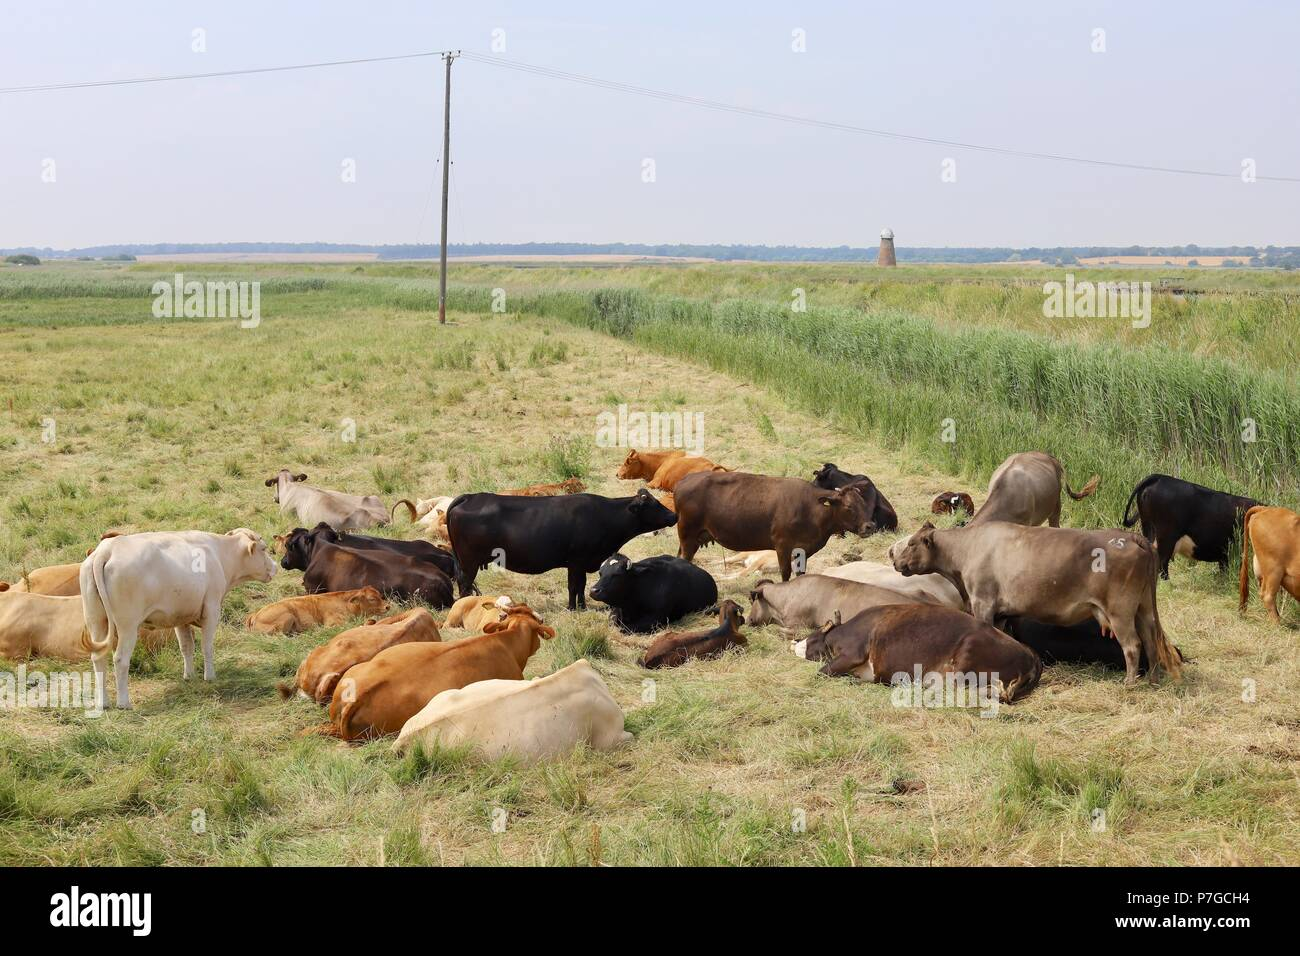 cows-grazing-and-resting-in-a-meadow-by-